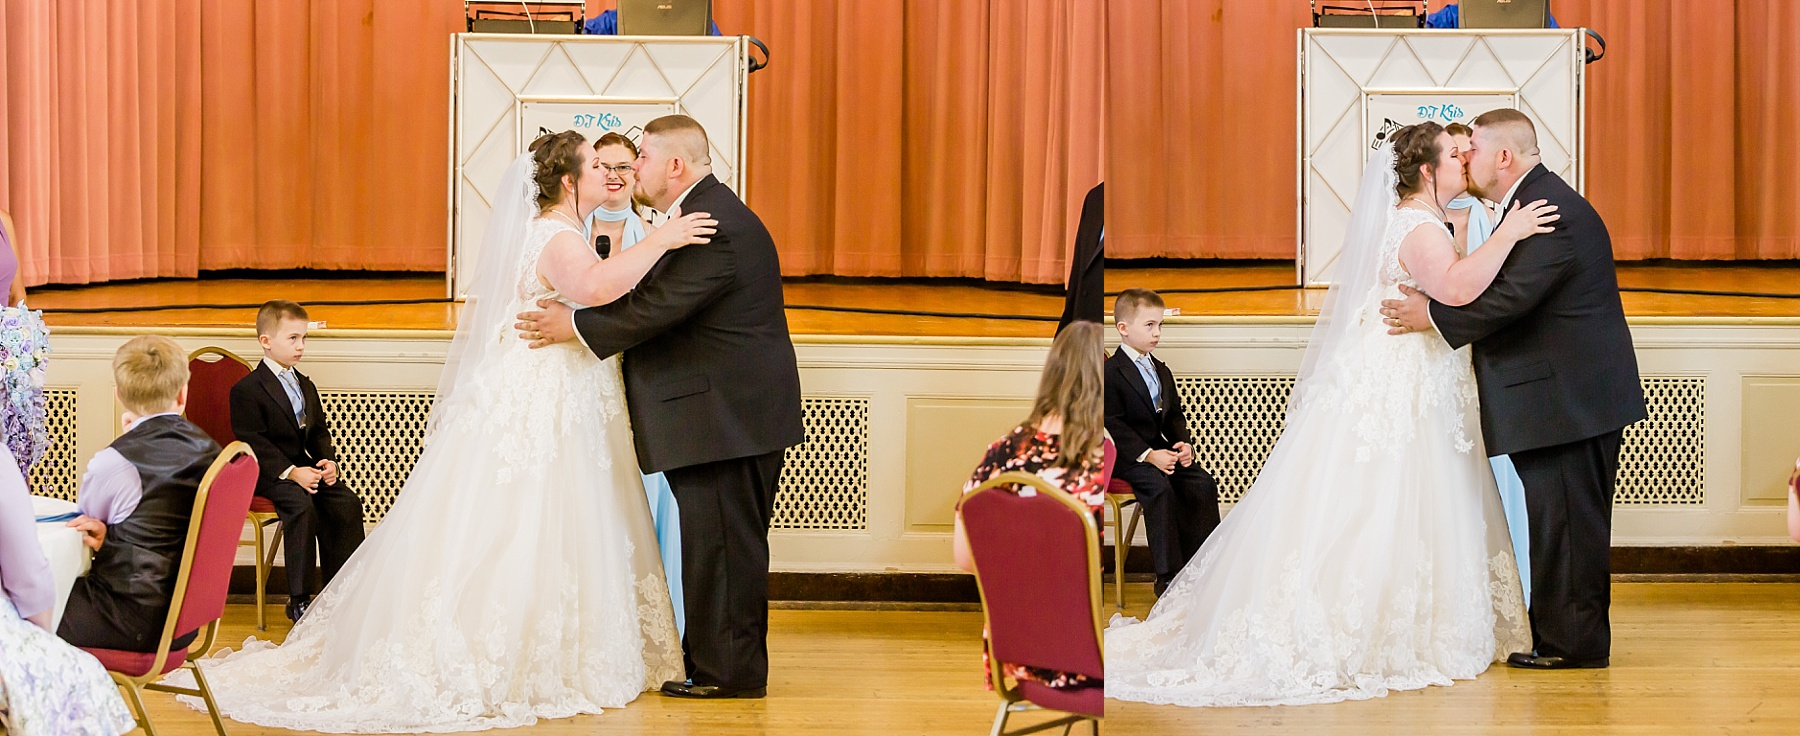 lafayette indiana wedding photographer photography thomas duncan hall_0134.jpg